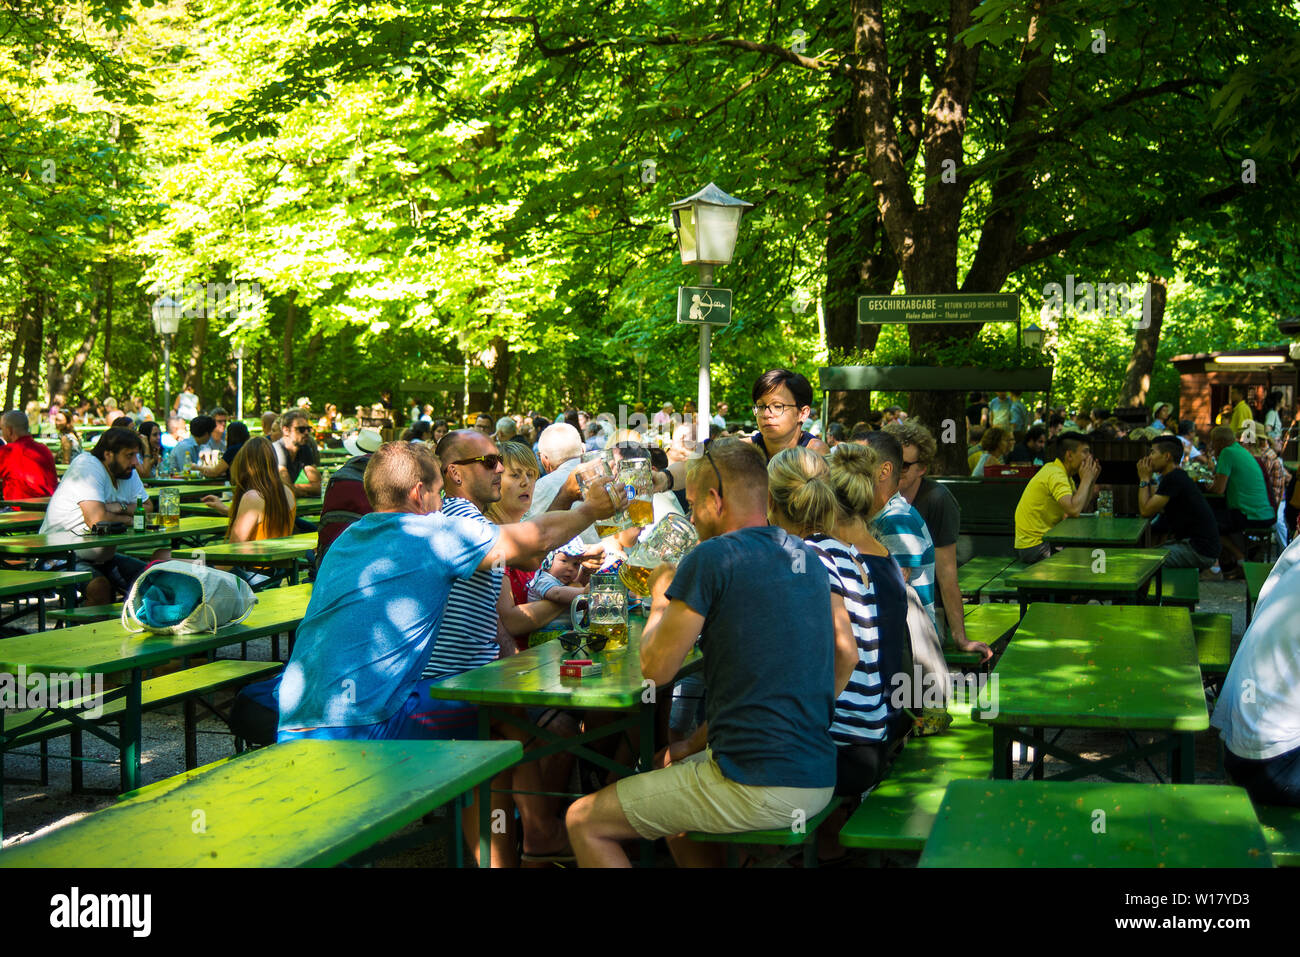 Munich,Germany-June 28,2019: A group of friends toast at a biergarten - Stock Image